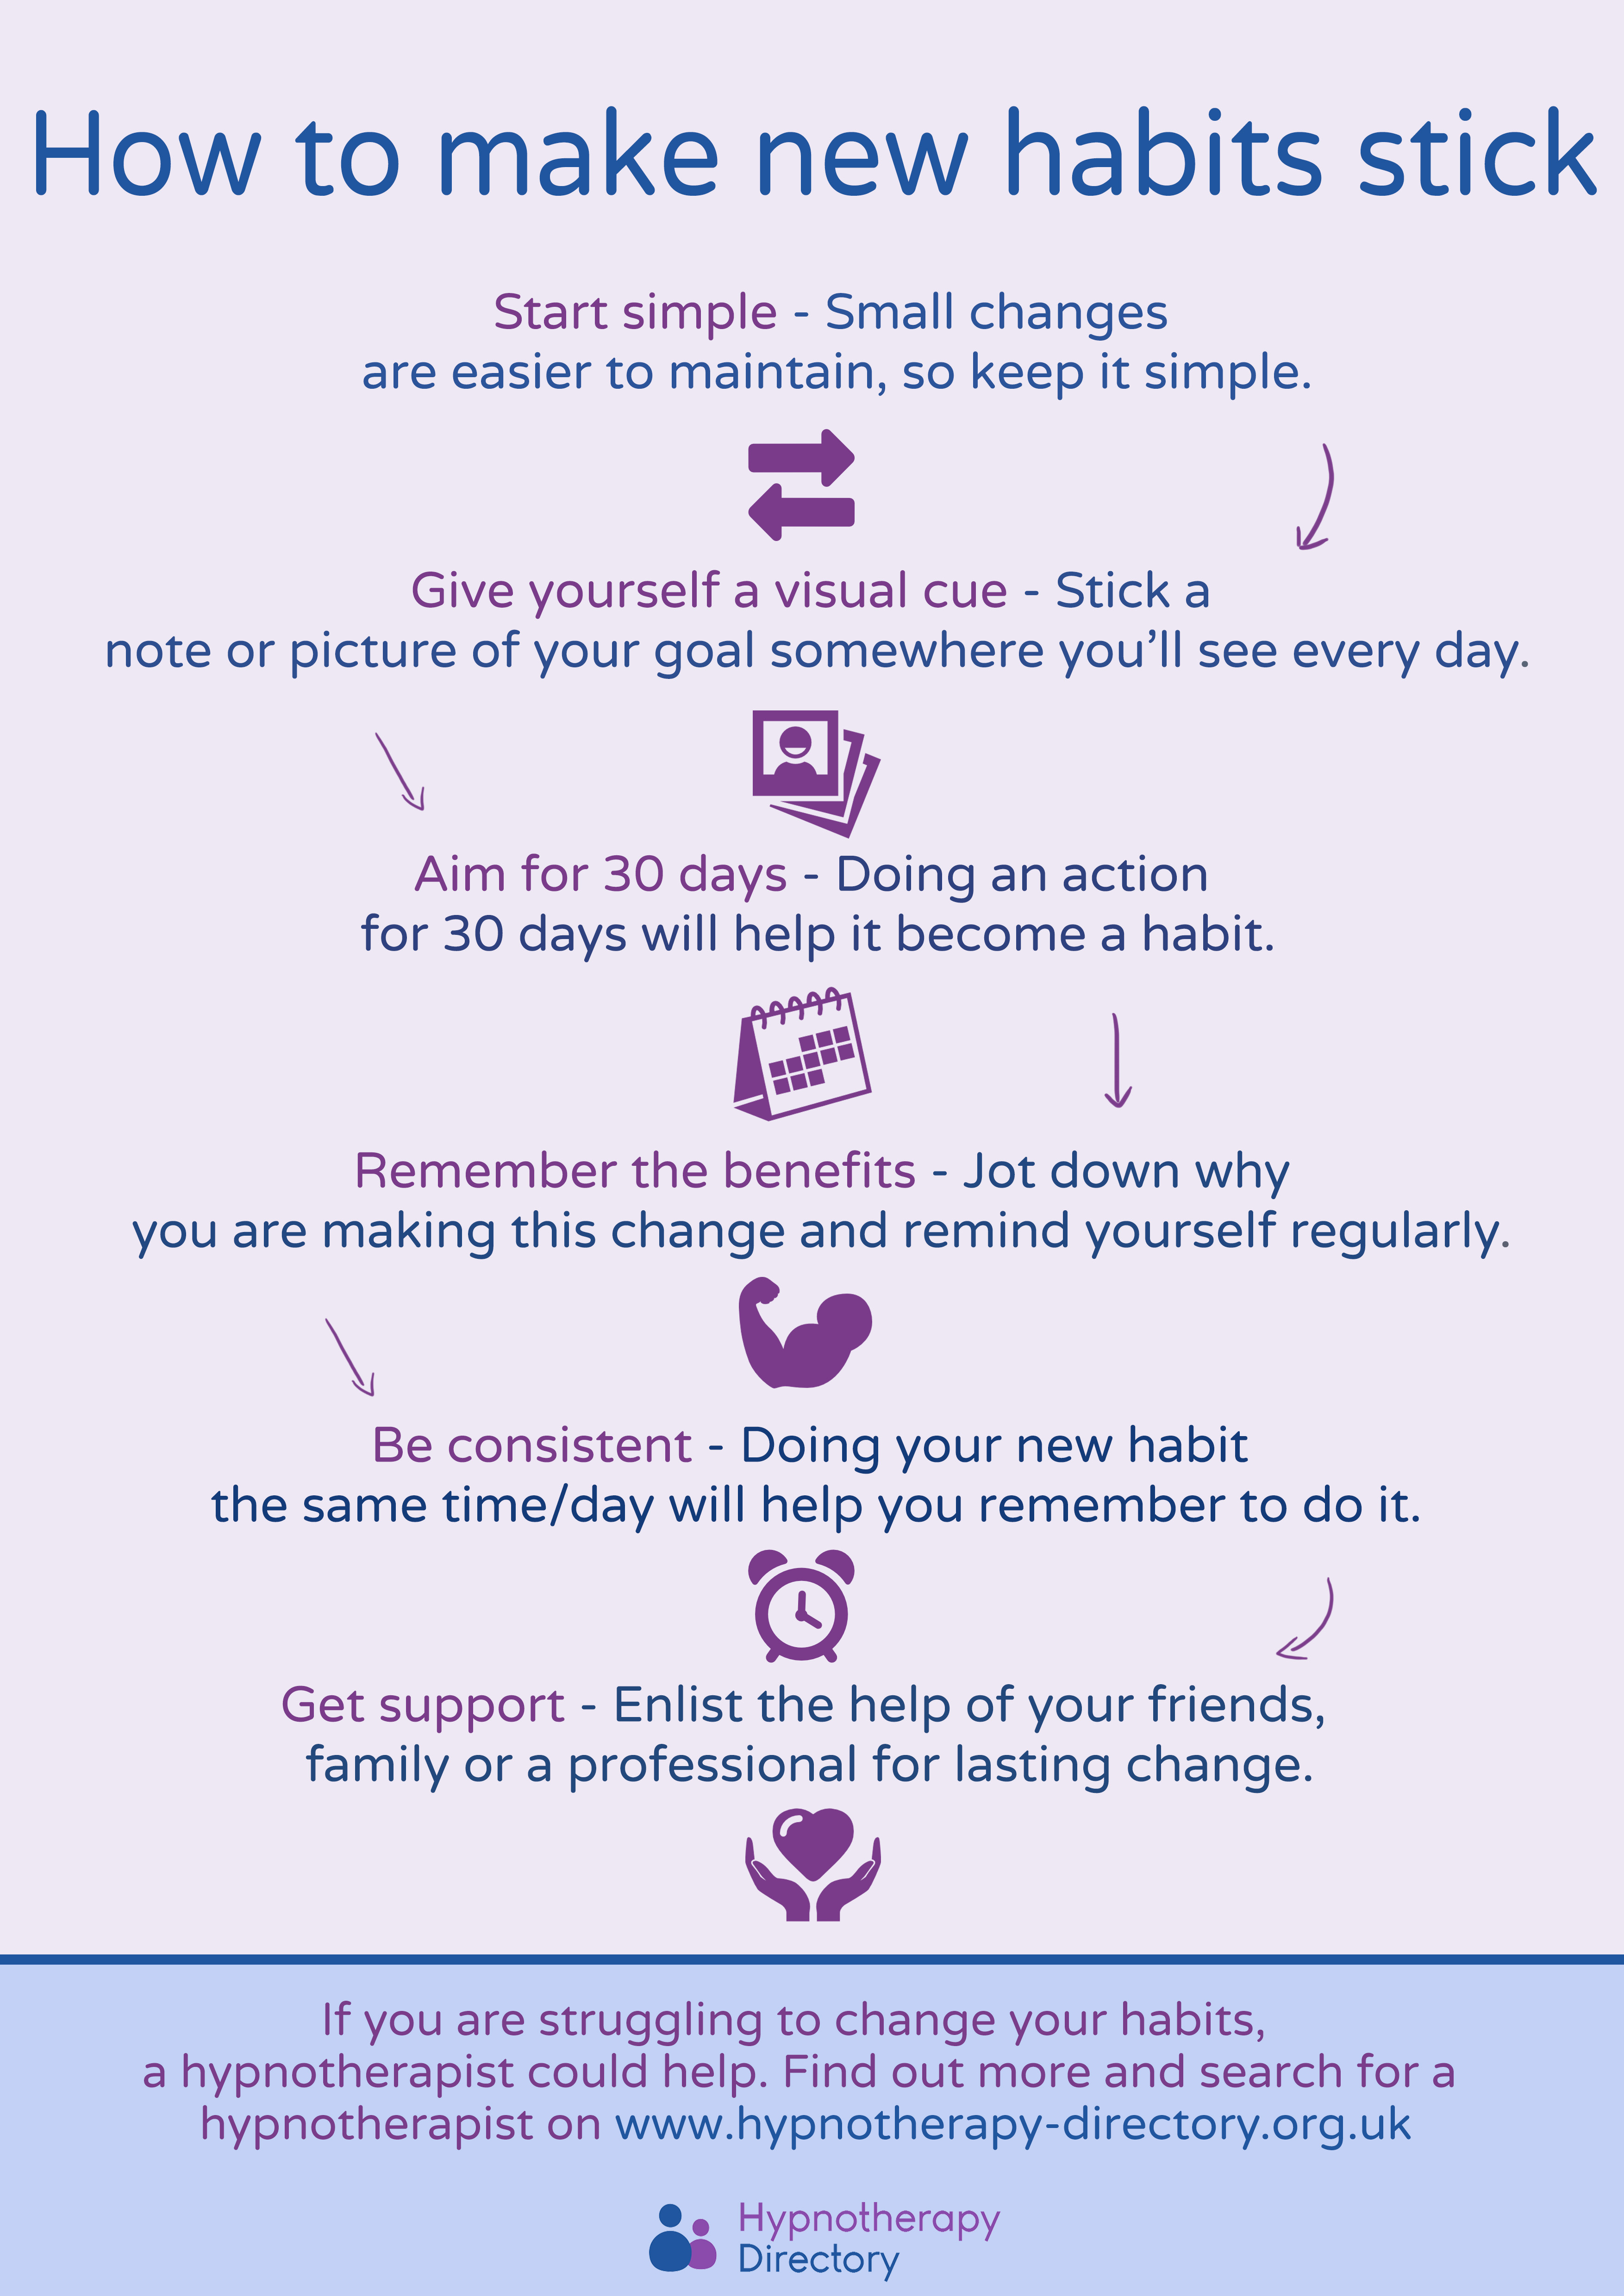 How To Make Habits Stick Infographic